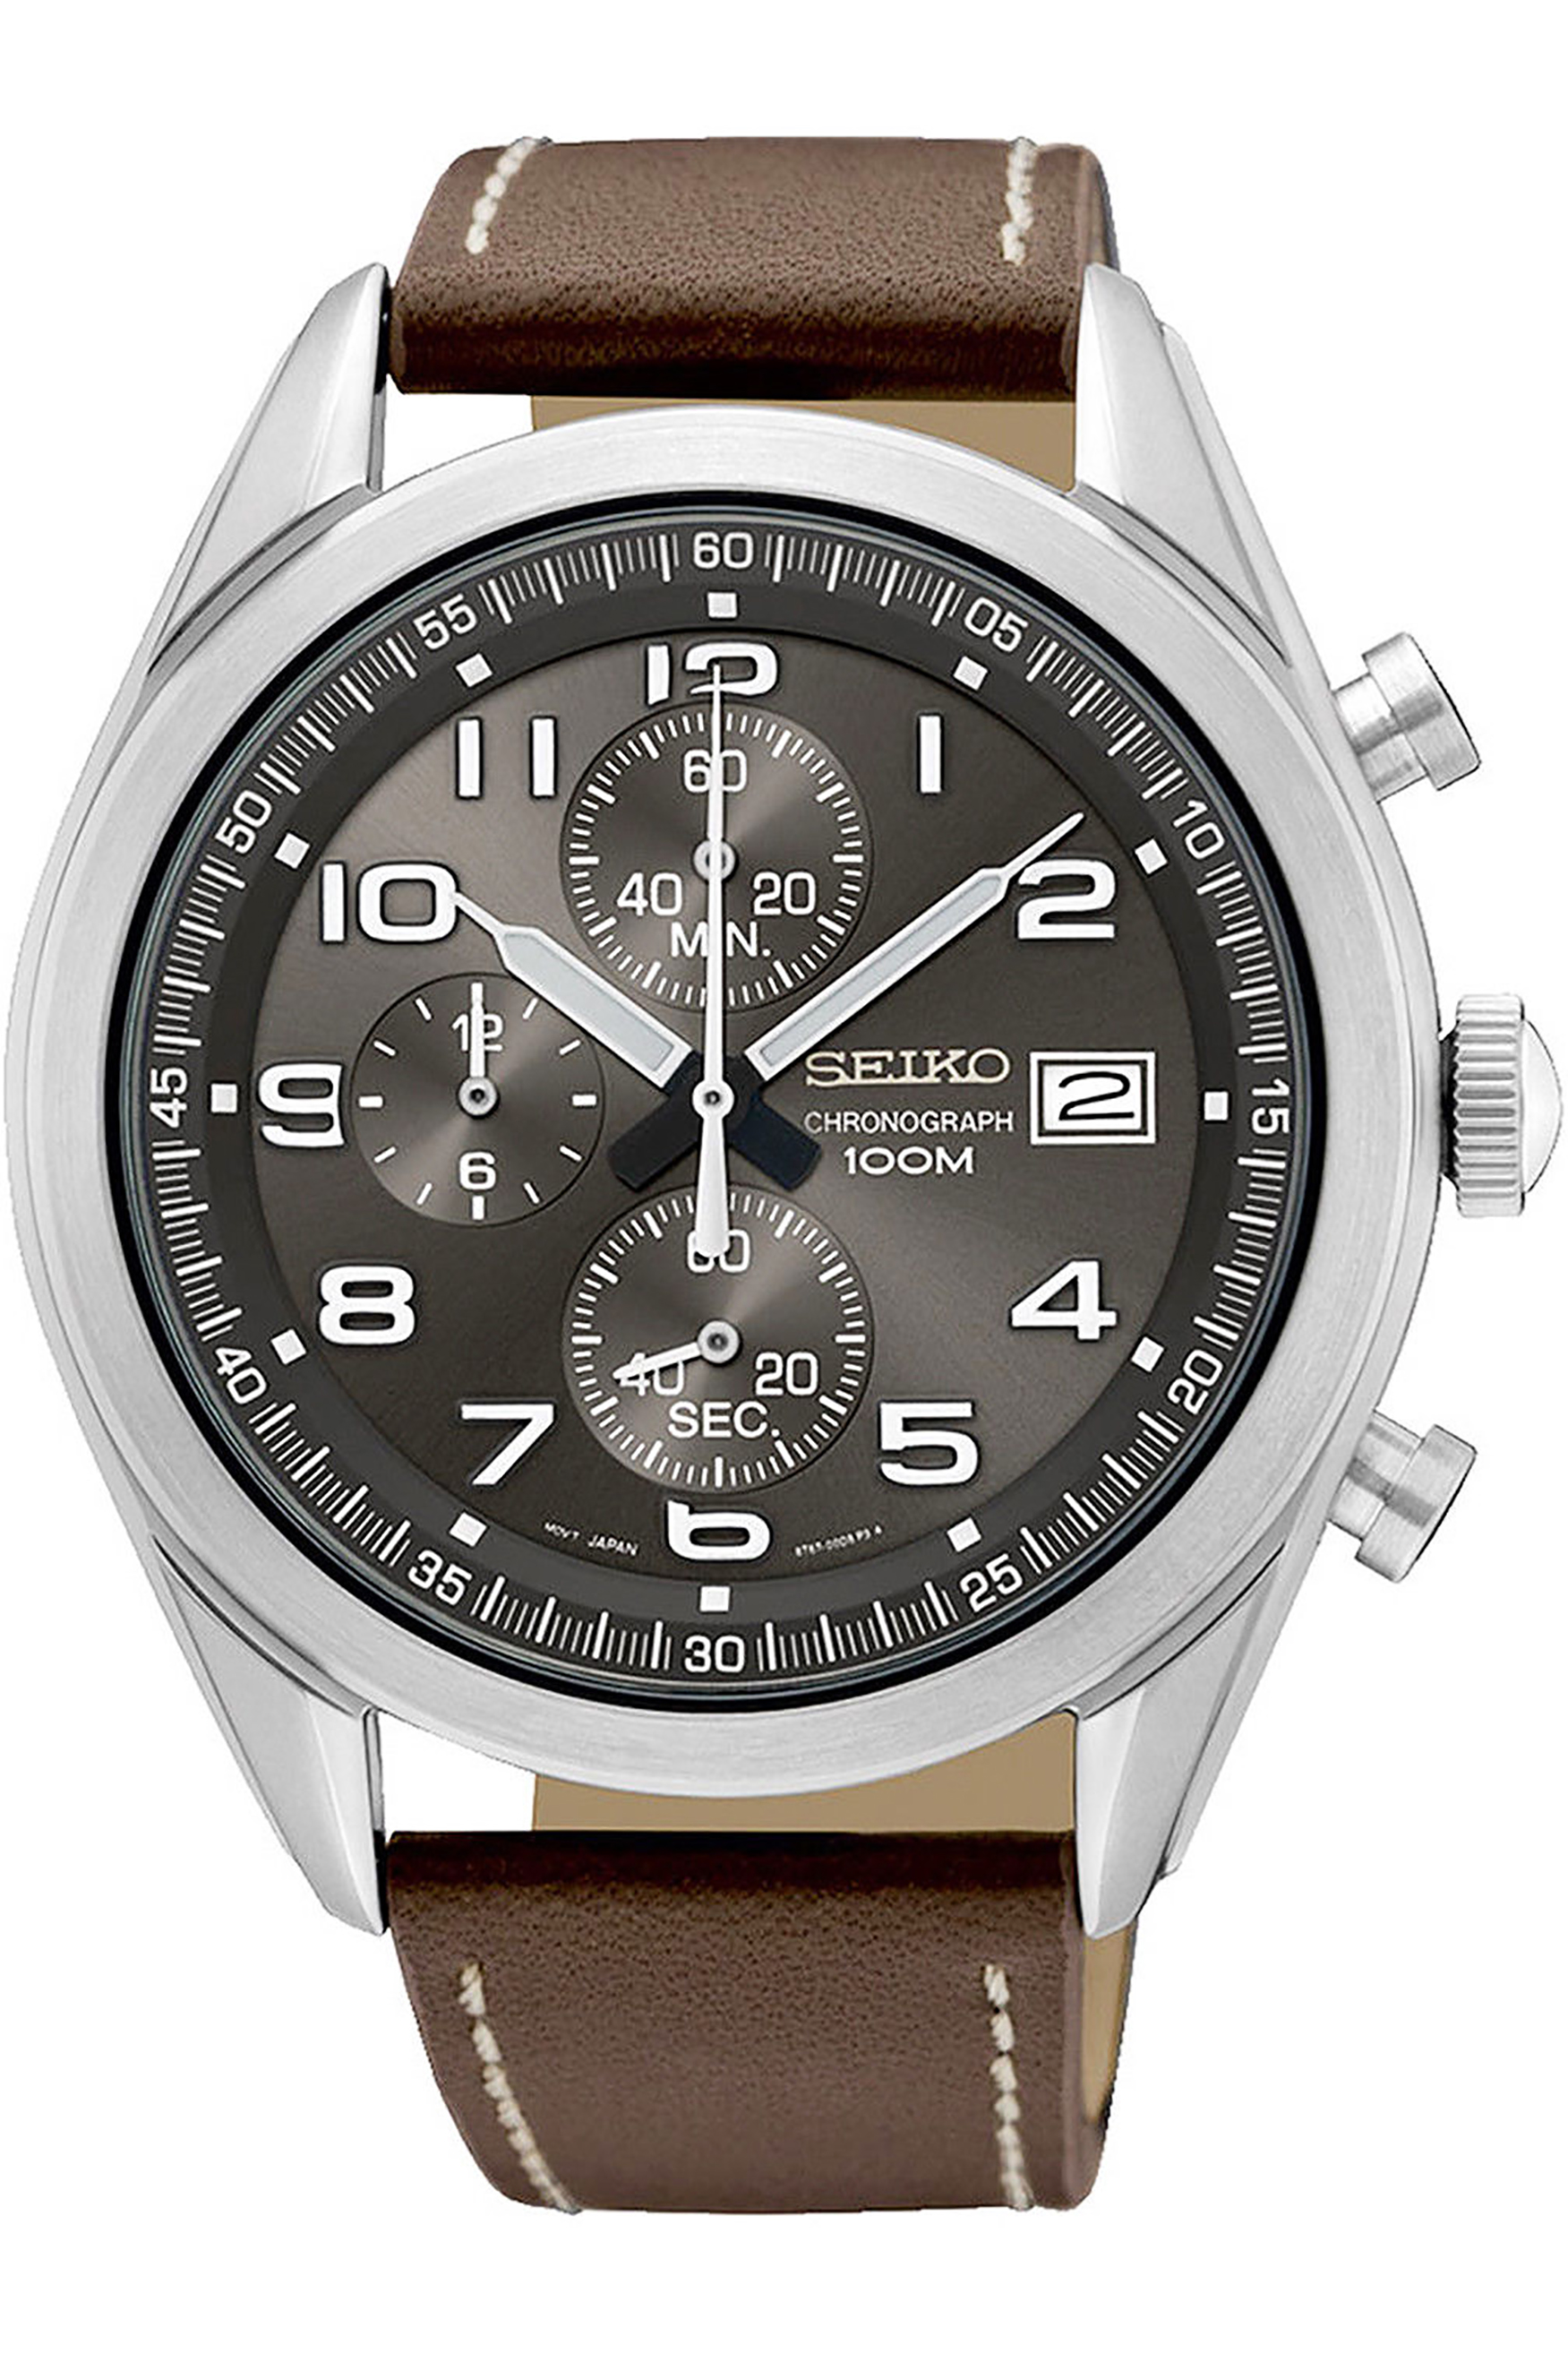 SEIKO SSB275P1,Men's Chronograph,stainless steel case,leather strap,date,100m WR,SSB275